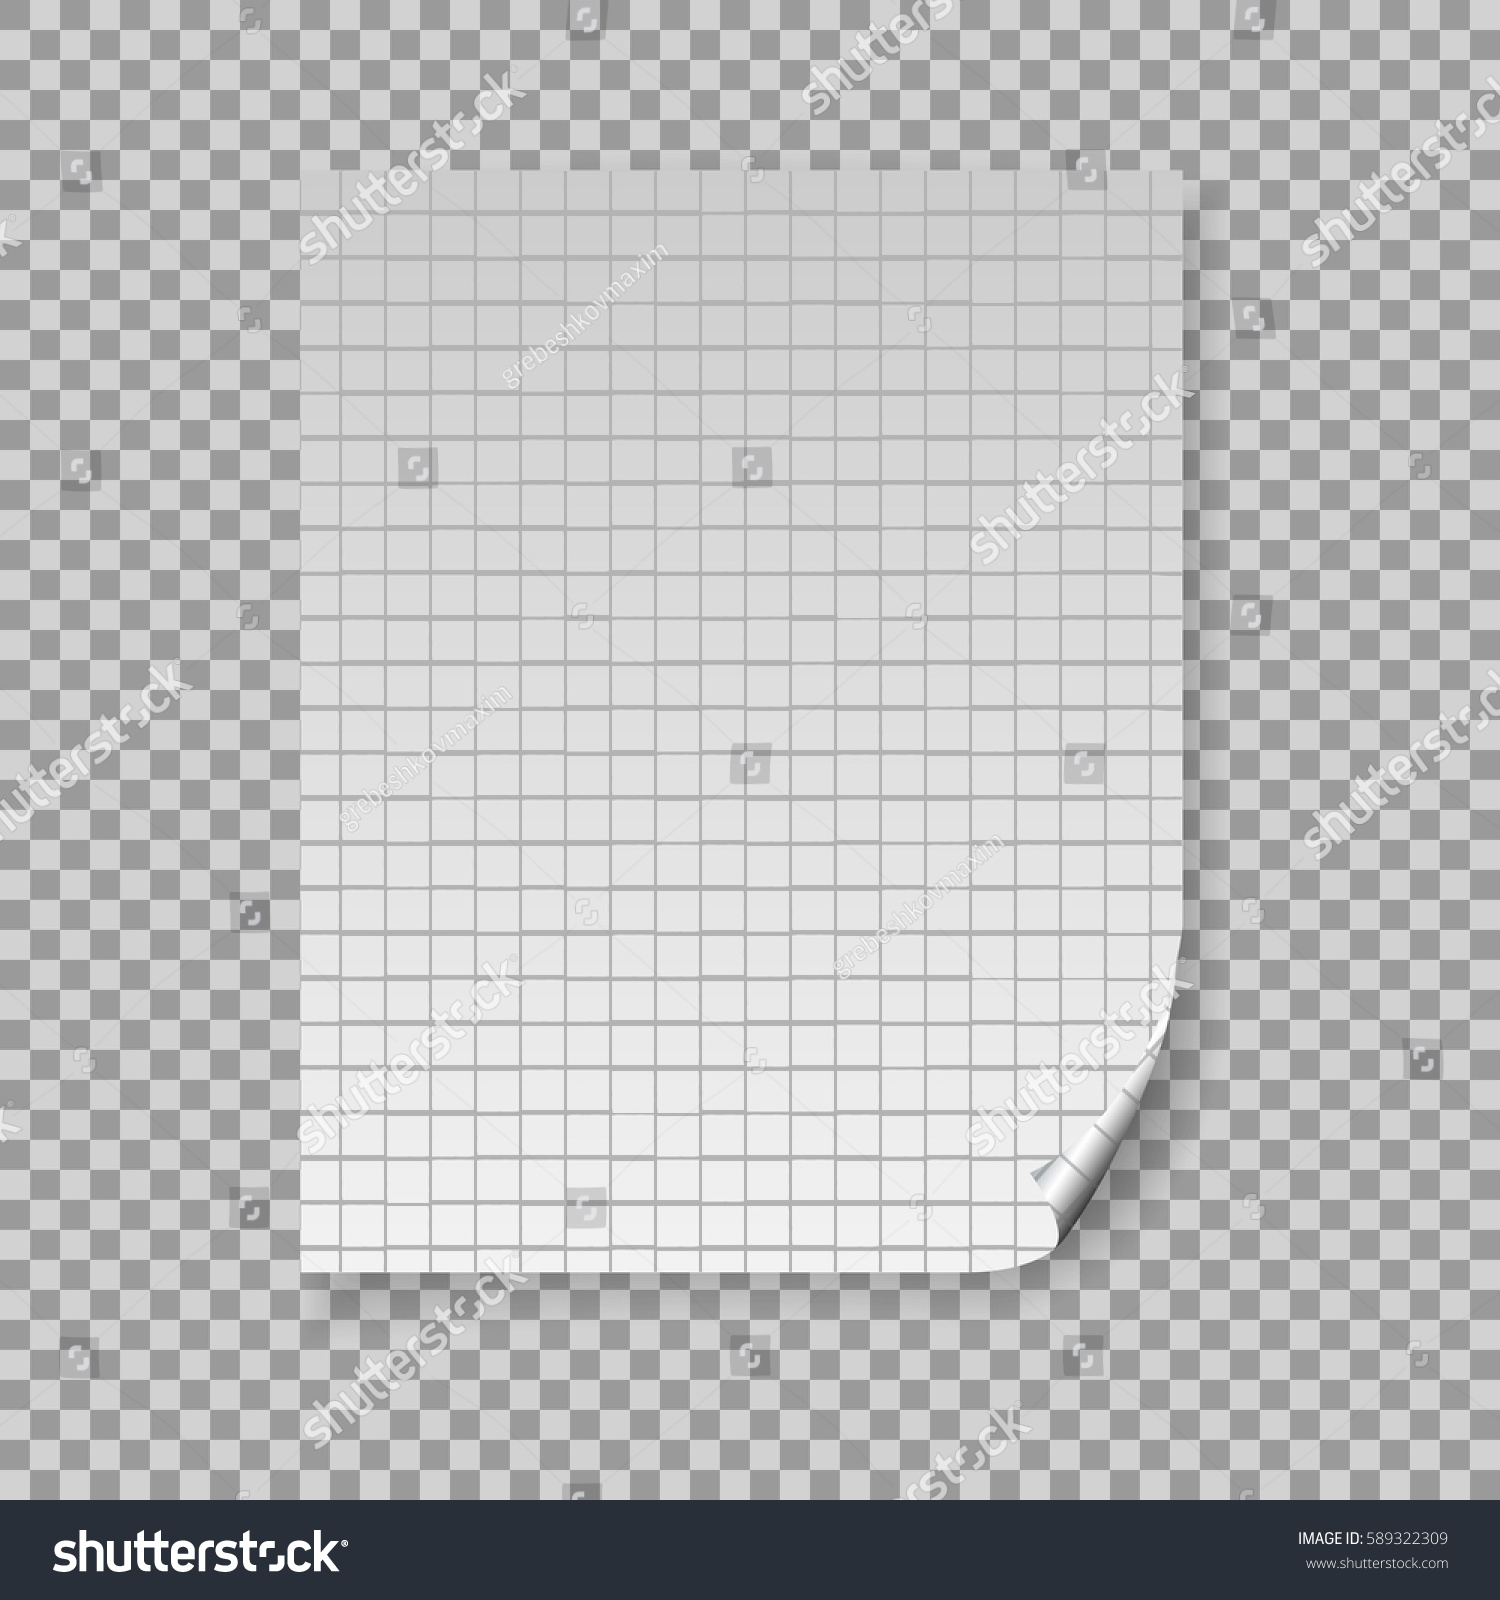 Blank A4 Paper Math Squares On Stock Vector 589322309 - Shutterstock